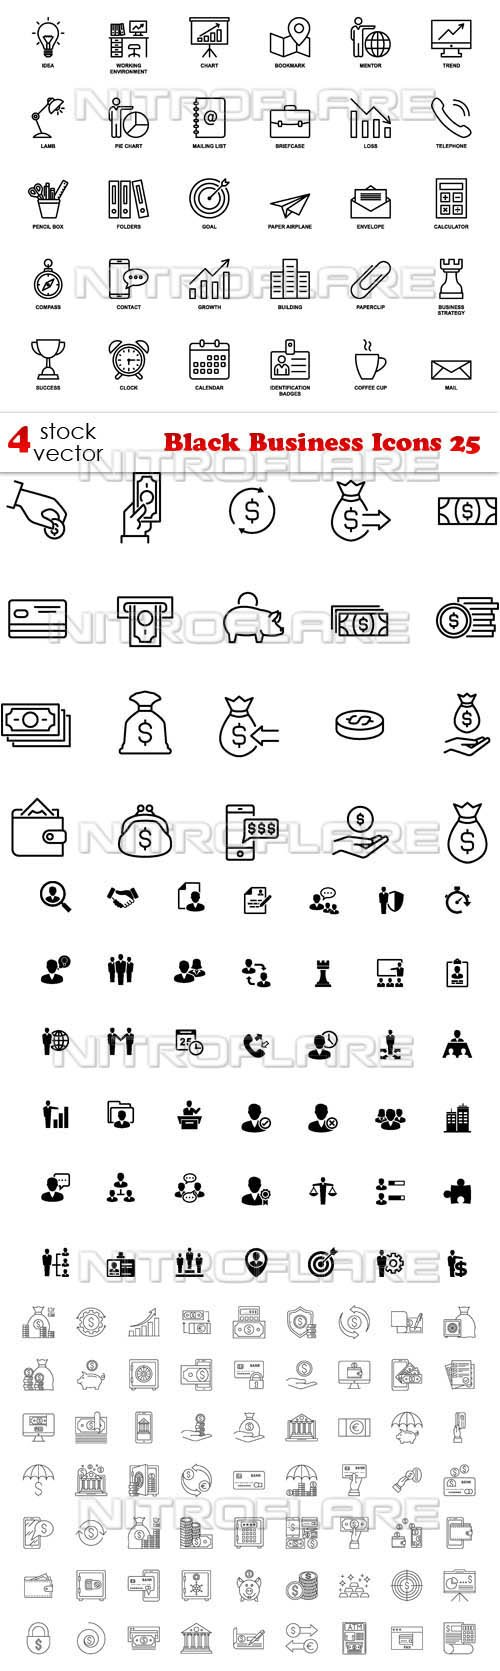 Vectors - Black Business Icons 25